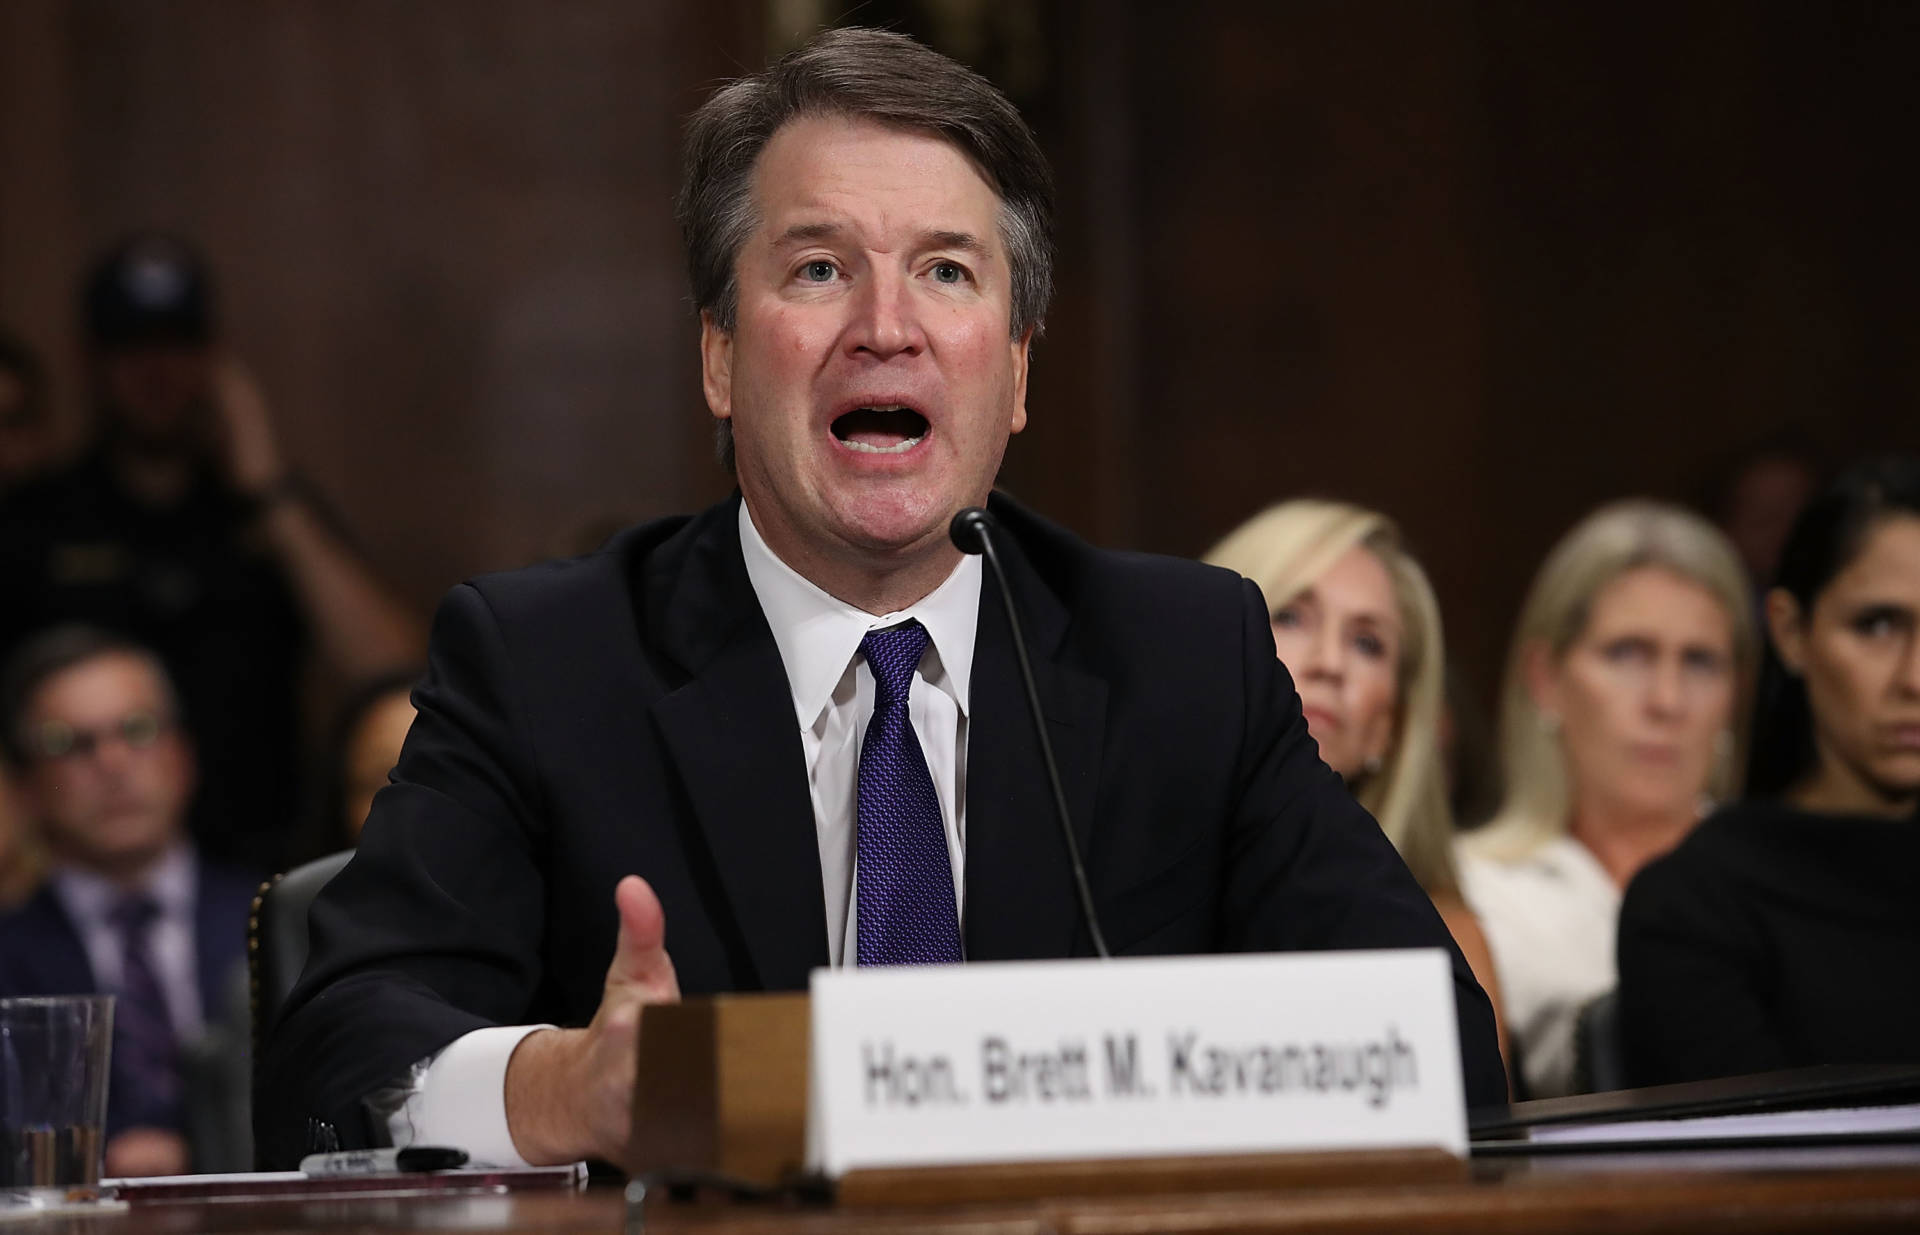 Judge Brett Kavanaugh testifies to the Senate Judiciary Committee during his Supreme Court confirmation hearing on Capitol Hill on Sept. 27. The Senate is taking a final vote on his nomination on Saturday.